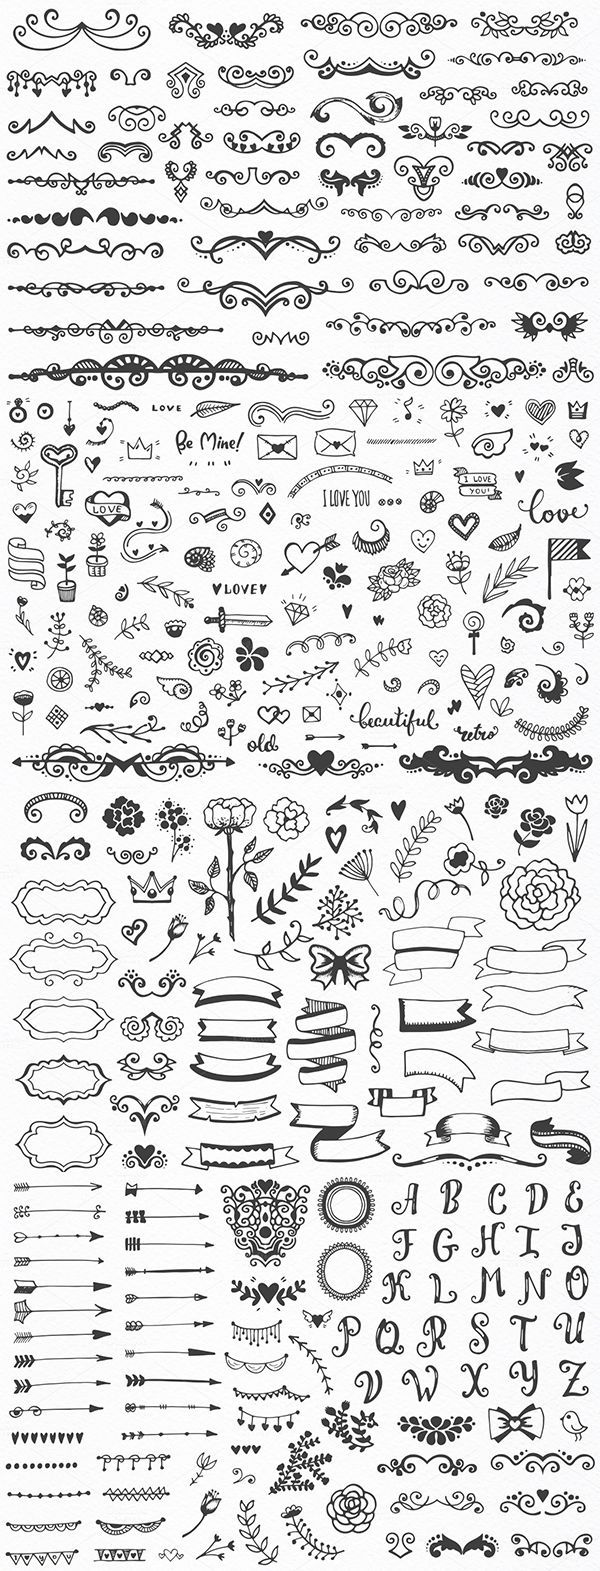 Hand sketched designs always look beautiful. You can make them in any patterns, using different colorful sketch pens or pencils or marker pens. Making hand sketched designs is a wonderful way to pass your free time. You can make something creative by hand sketching these designs. If you are sitting idle at your home and …